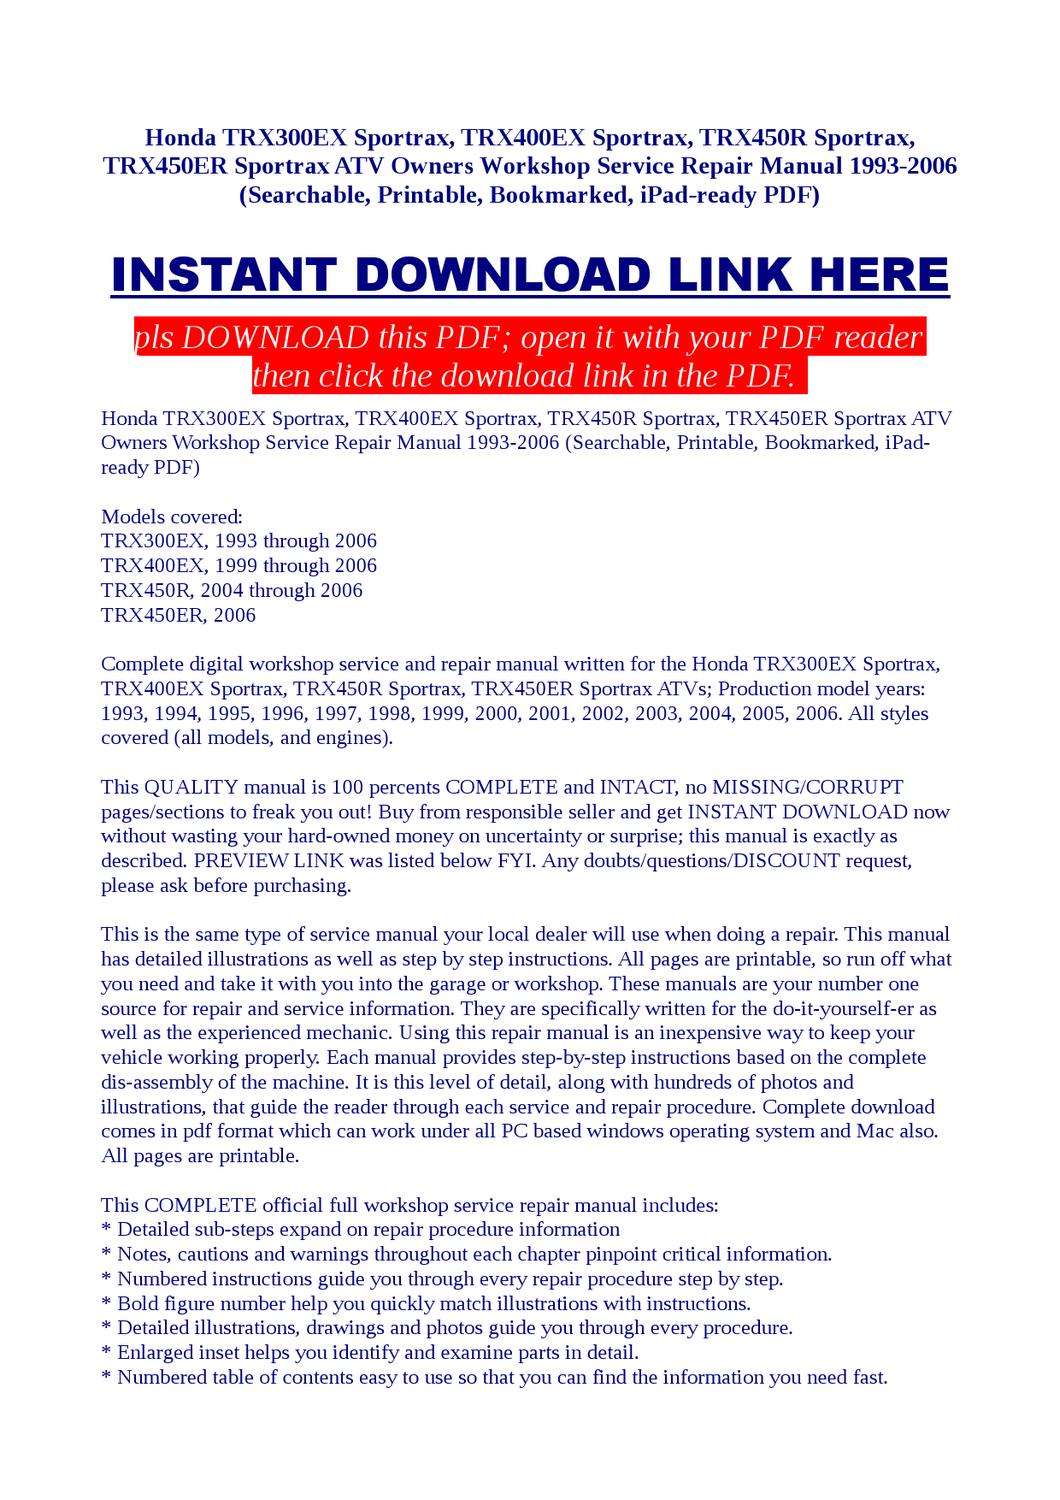 Honda TRX300EX SportraxWorkshop Service Repair Manual 1993-2006 by Sam  Wokie - issuu